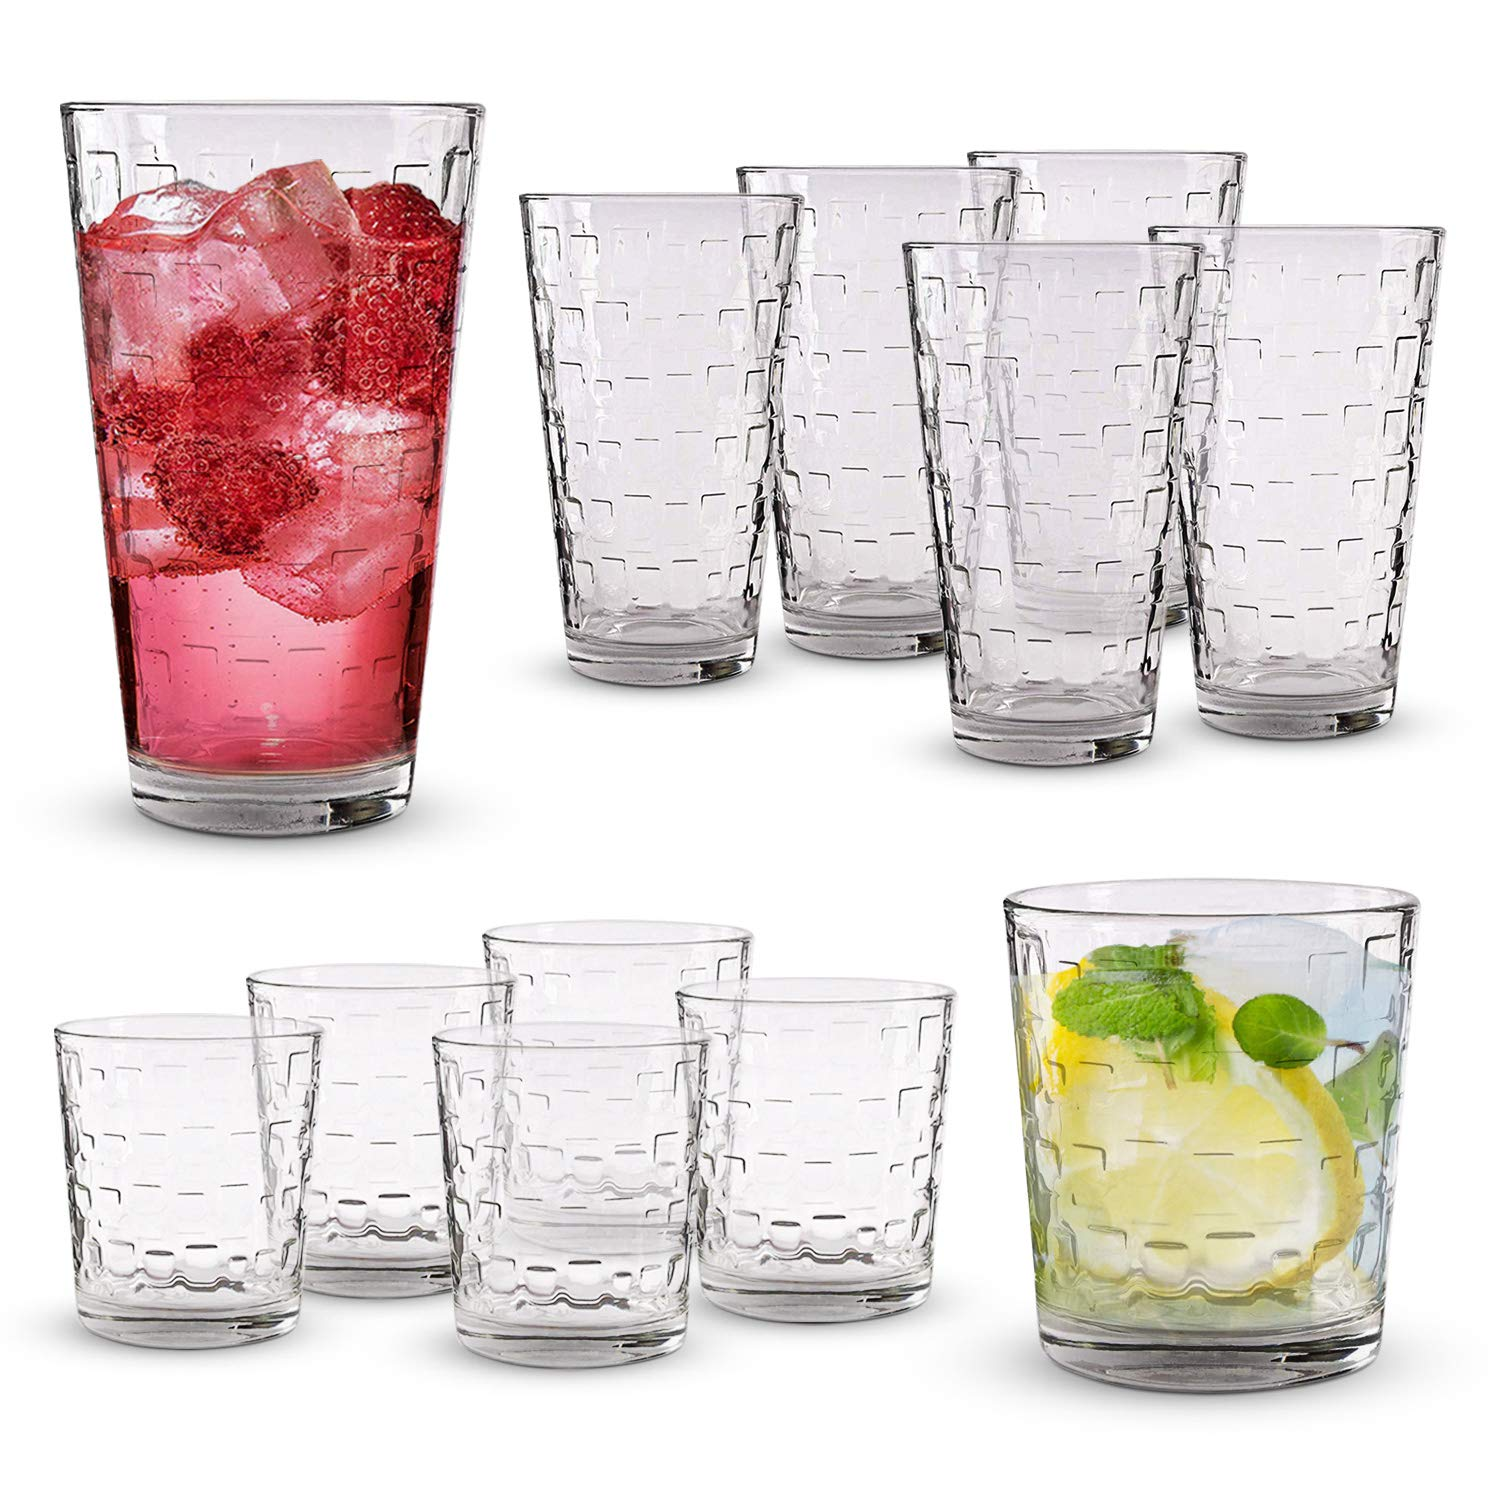 Emenest Clear Drinking Glasses (Set of 12) | Real Glassware with Heavy Base | 6 Highball and 6 Double Old Fashioned Drinkware | Mixed Tumbler Set For Water, Whiskey, Cocktails | Best Kitchen Gift